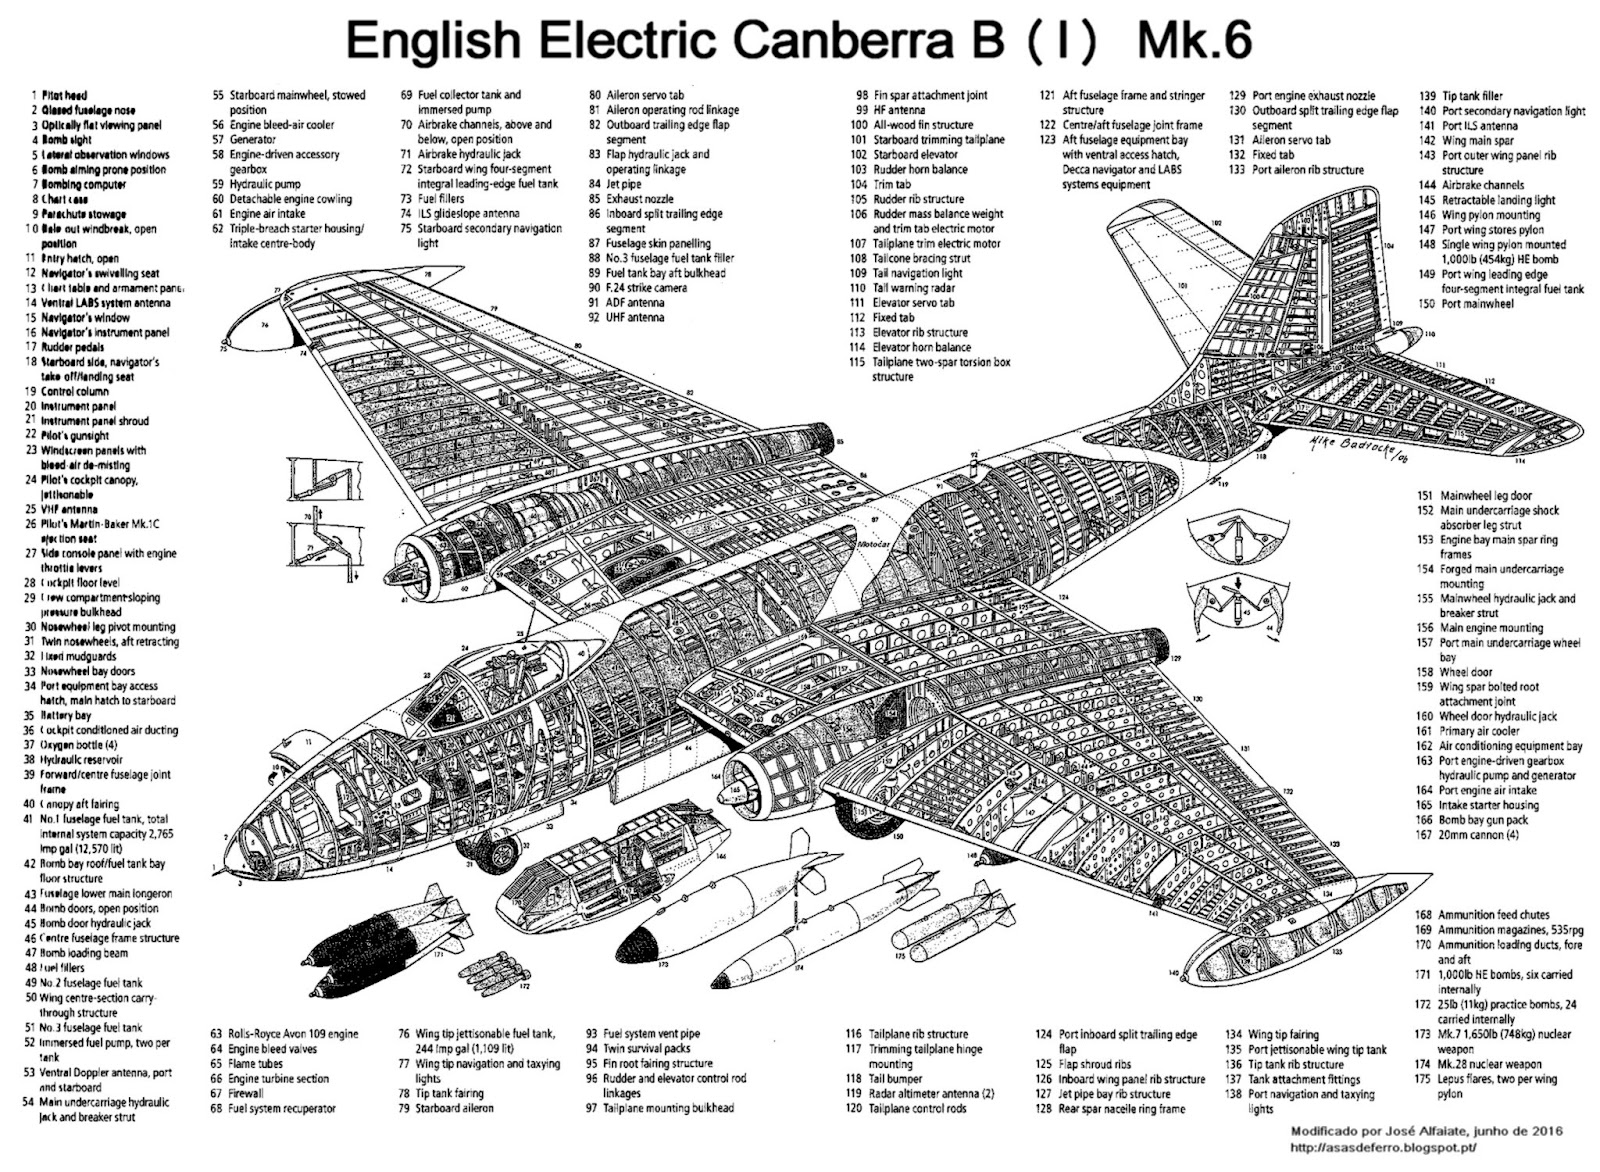 Avioes Militares English Electric Canberra